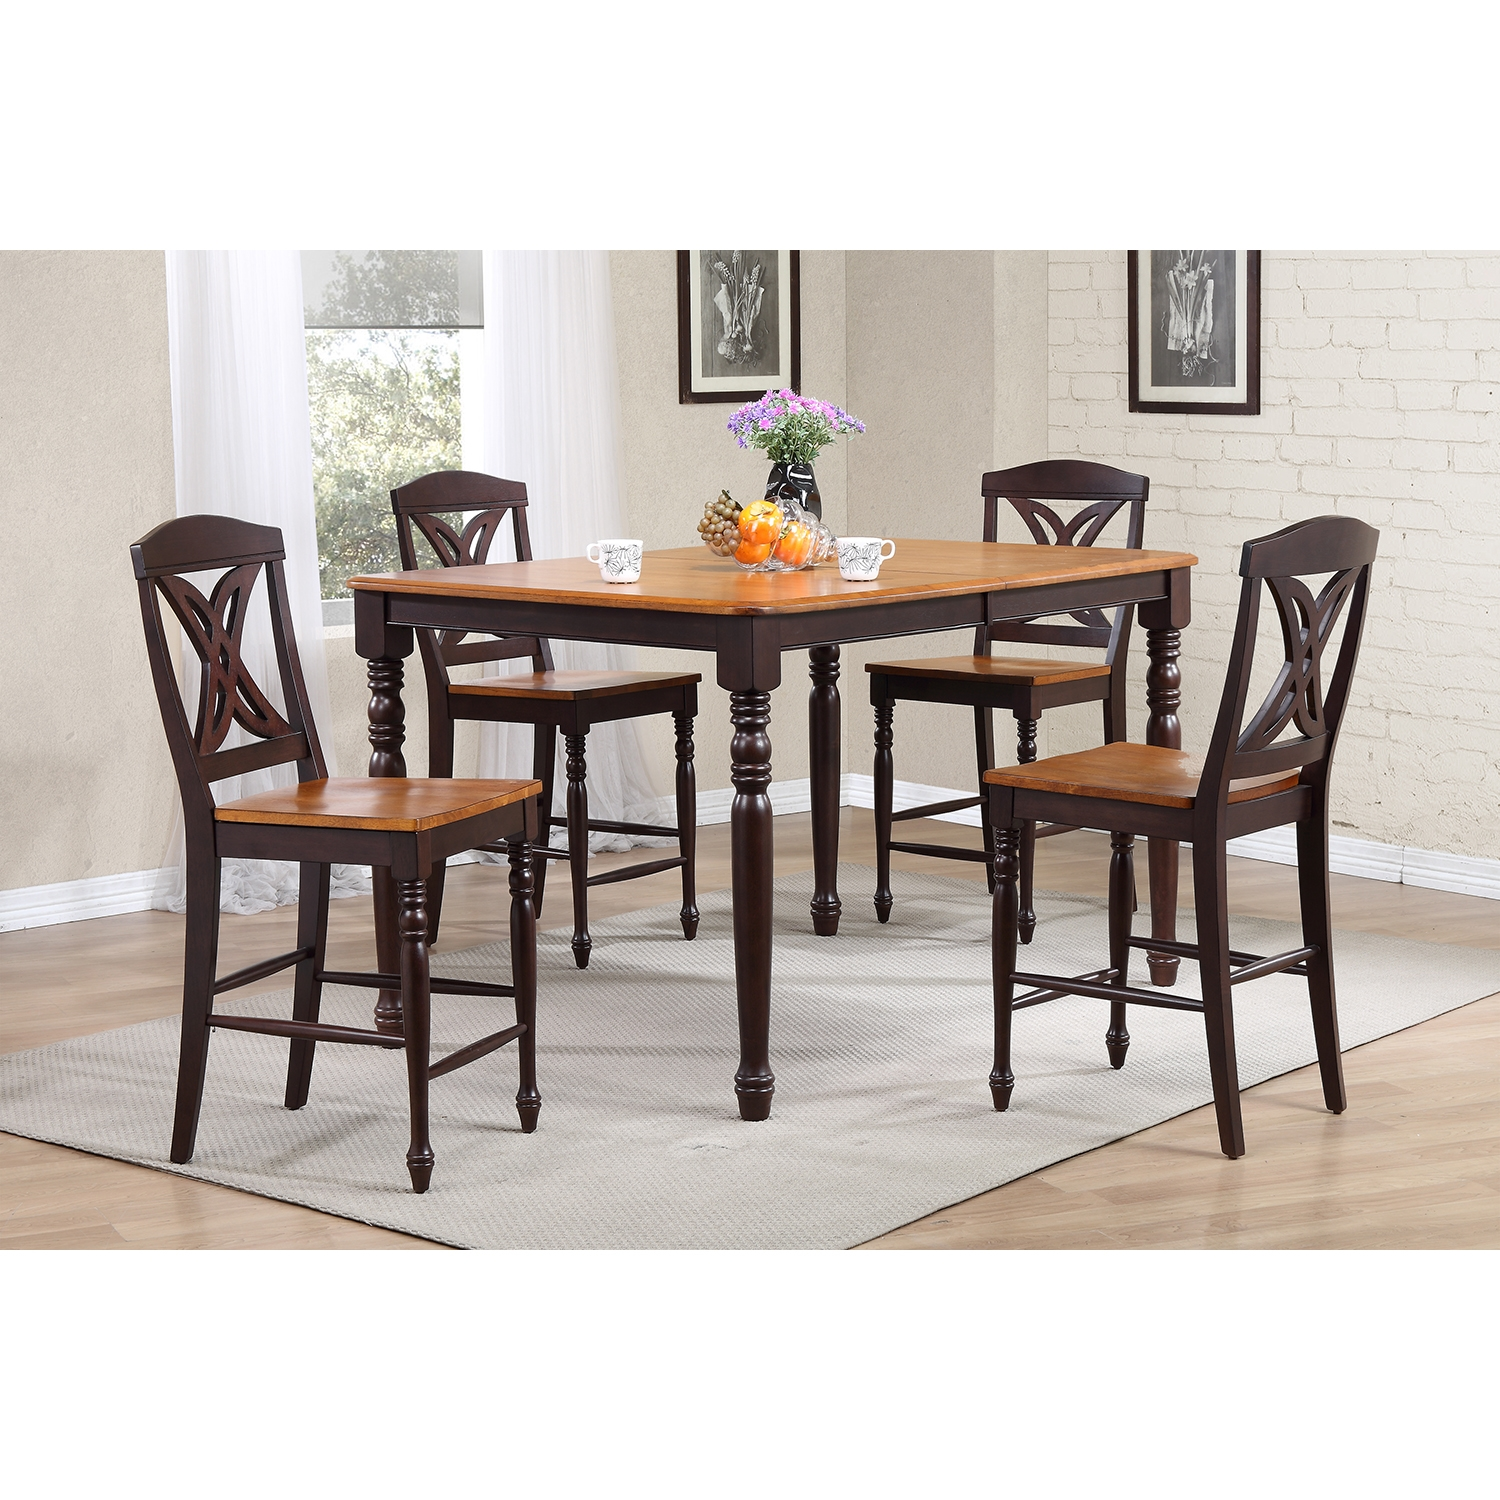 5-Piece Counter Dining Set - Wood Seat, Butterfly Back, Whiskey and Mocha - ICON-RT67-CT-TU-STC50-WY-MA